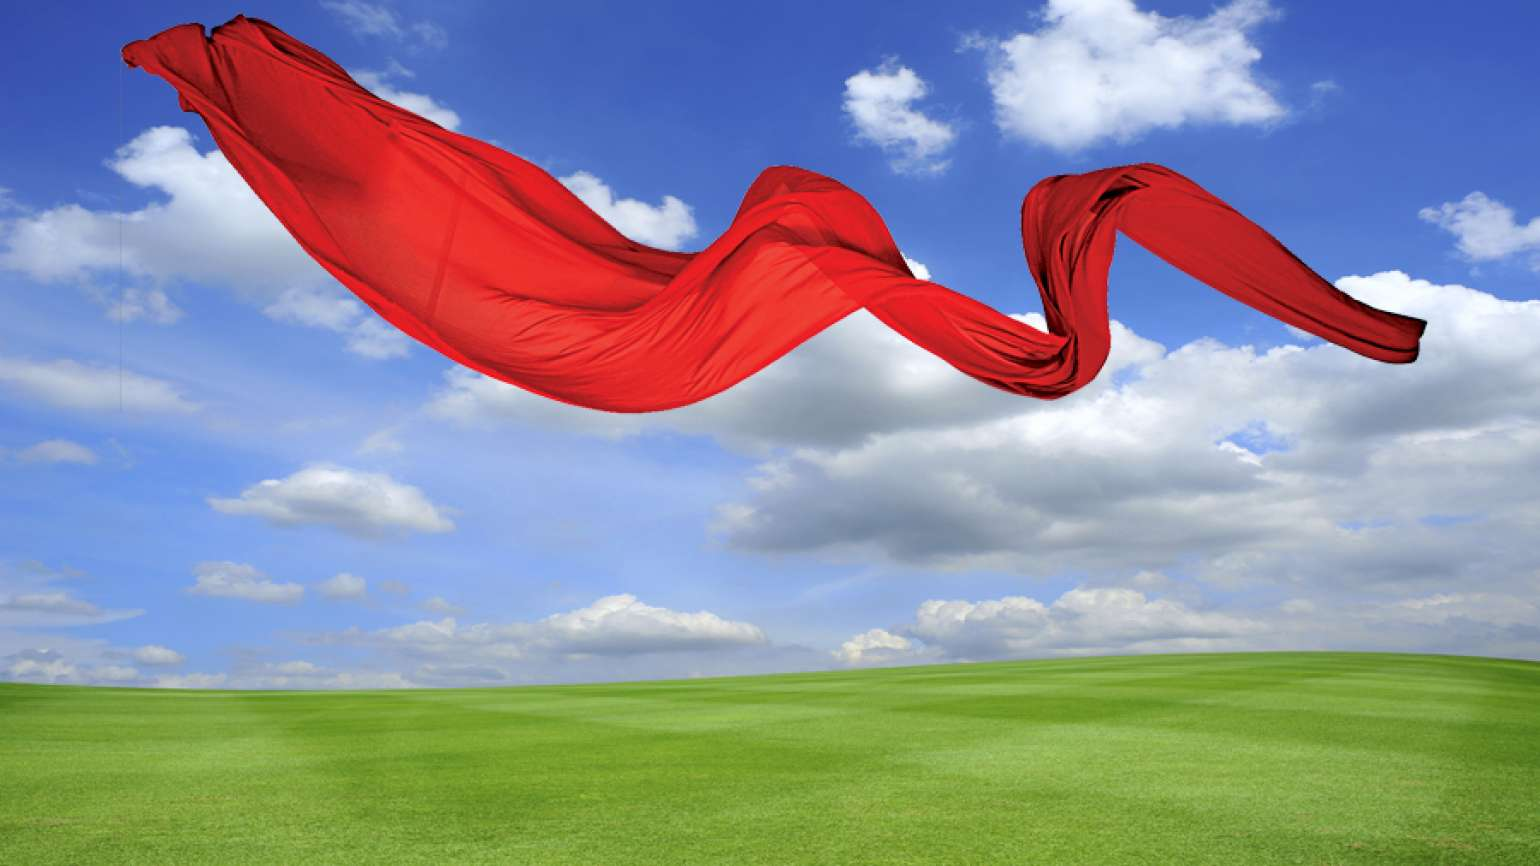 A long red scarf floats on the breeze.